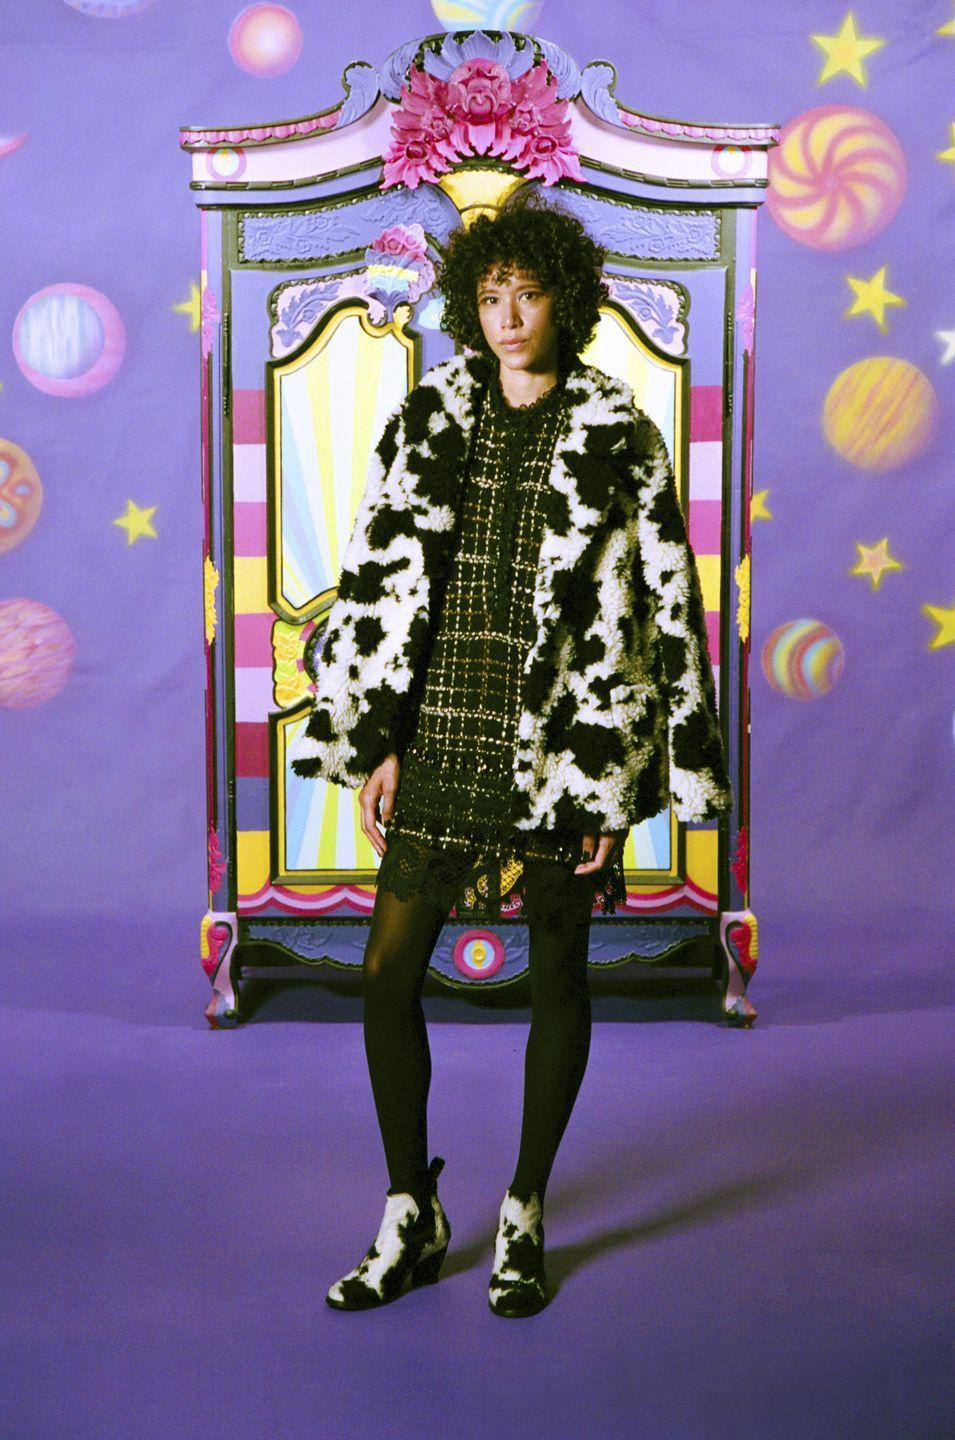 <p>Dal lookbook della <em>The Phantasmadelic Collection:</em> look Anna Sui <strong>Autunno Inverno 2021 2022</strong>.</p>